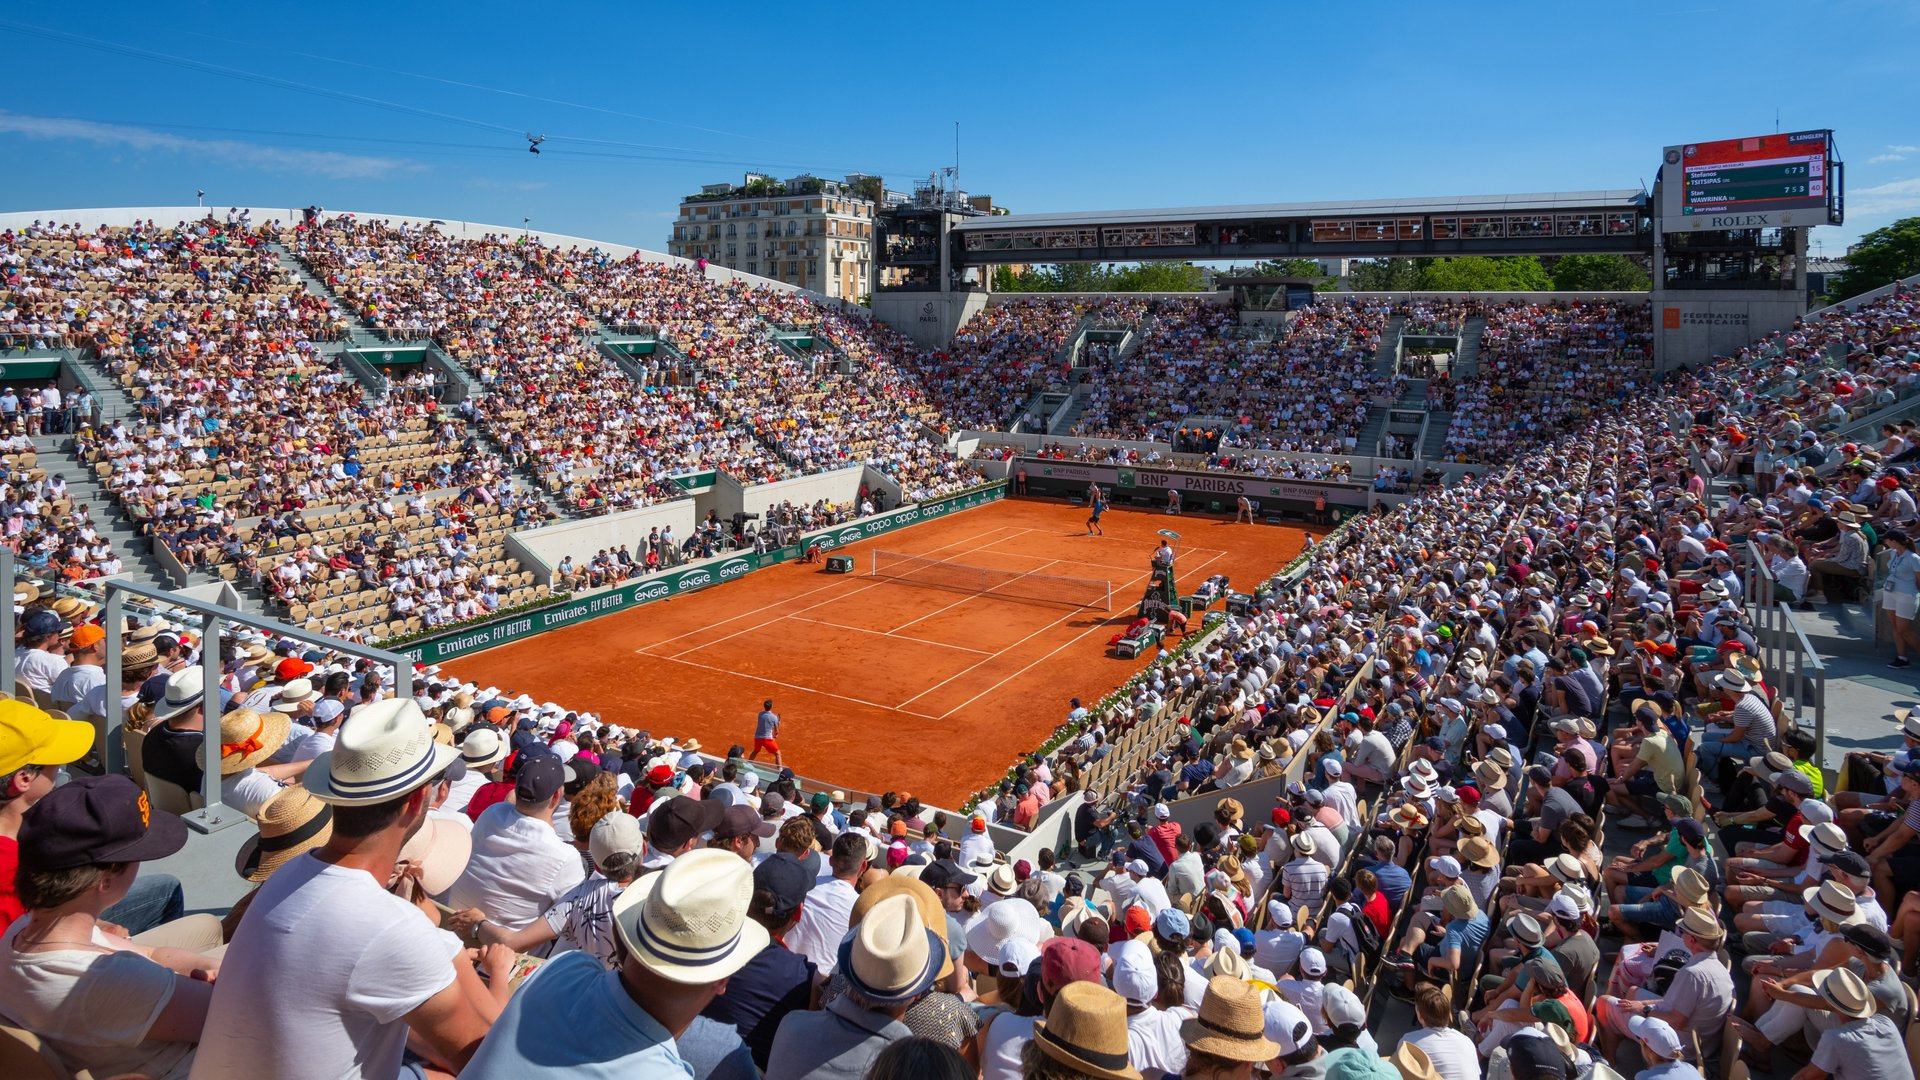 French Open (Roland Garros) in Paris 2020 - Best Time